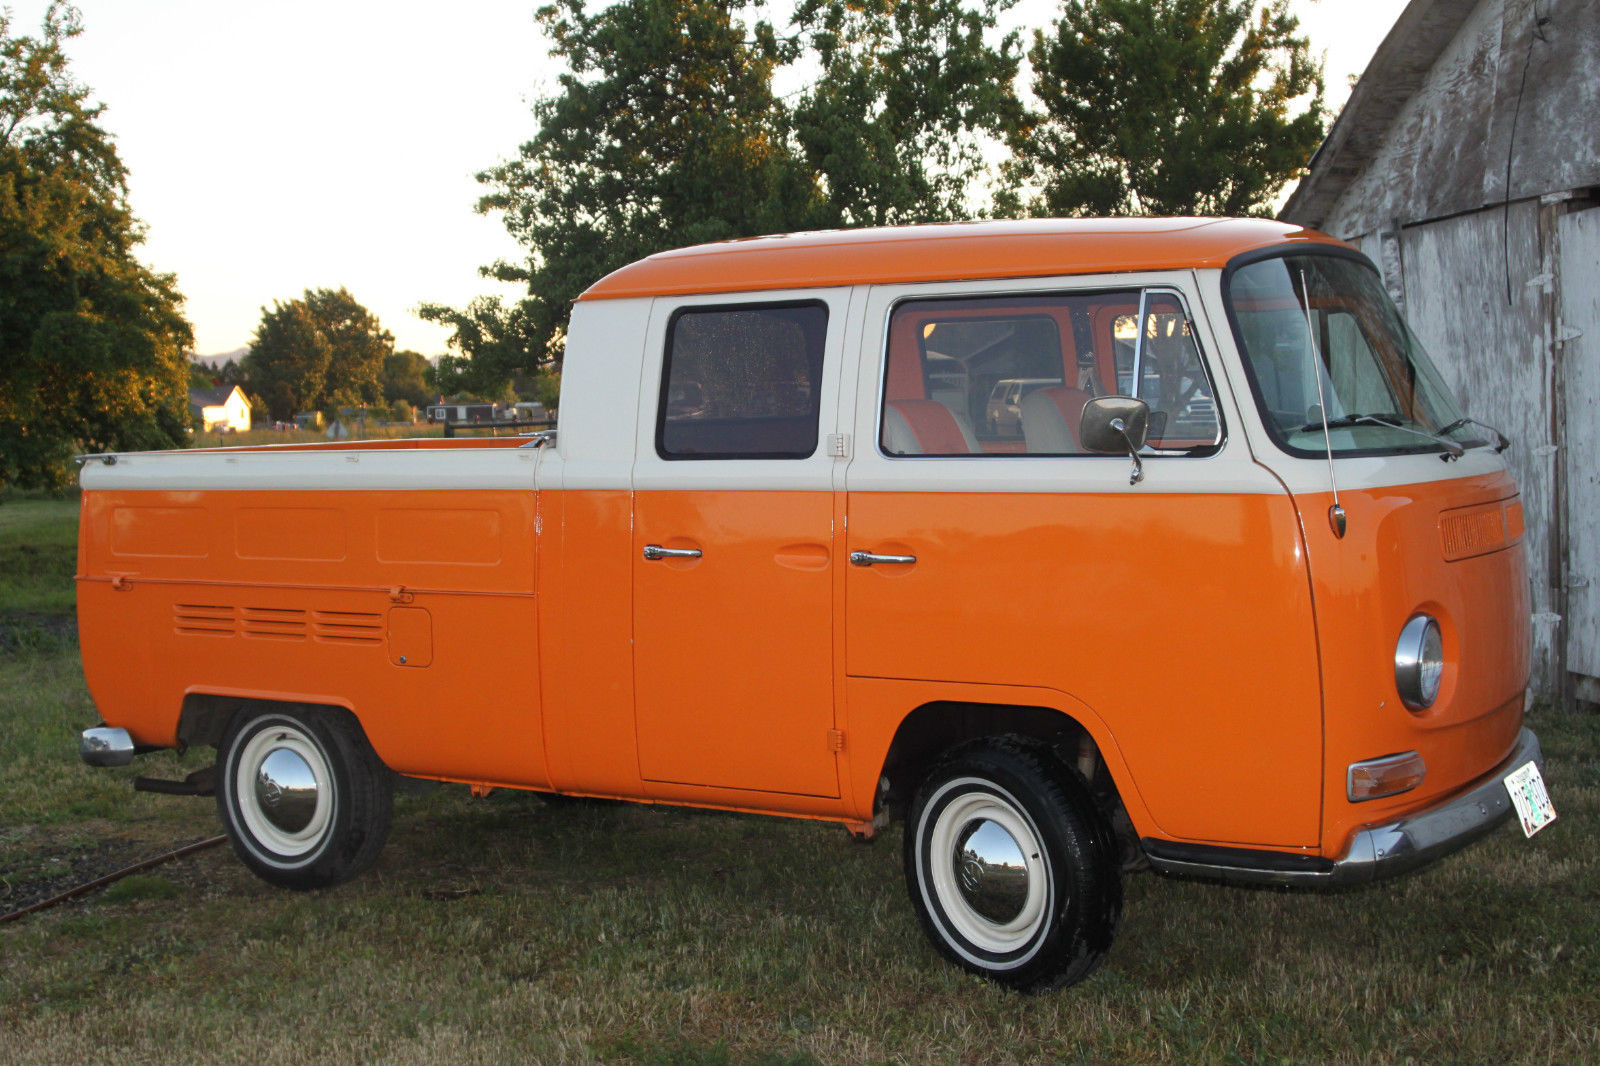 1968 Volkswagen Bus/vanagon Trasporter Pickup for sale